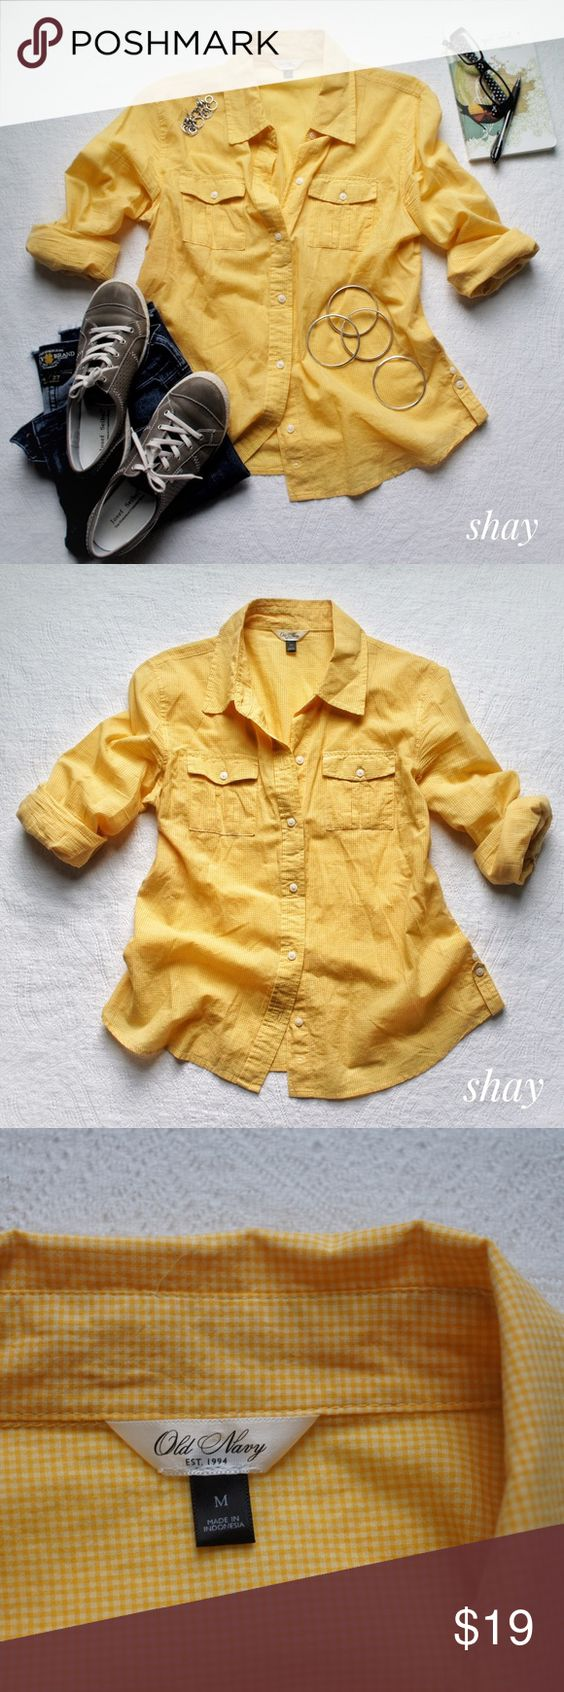 Yellow Gingham Button Down Soft, light weight, well made... the perfect shirt!  This has quality written all over it. Heck, even the tag is classy. 😜 Seriously, Old Navy and Gap really know how to design a button down. This yellow gingham will just pop against some dark denim shorts. It has tabs on the sleeves for rolling but I never use them myself. I just roll and tuck the tabs back into the sleeve.  This one is a must have basic. Old Navy Tops Button Down Shirts